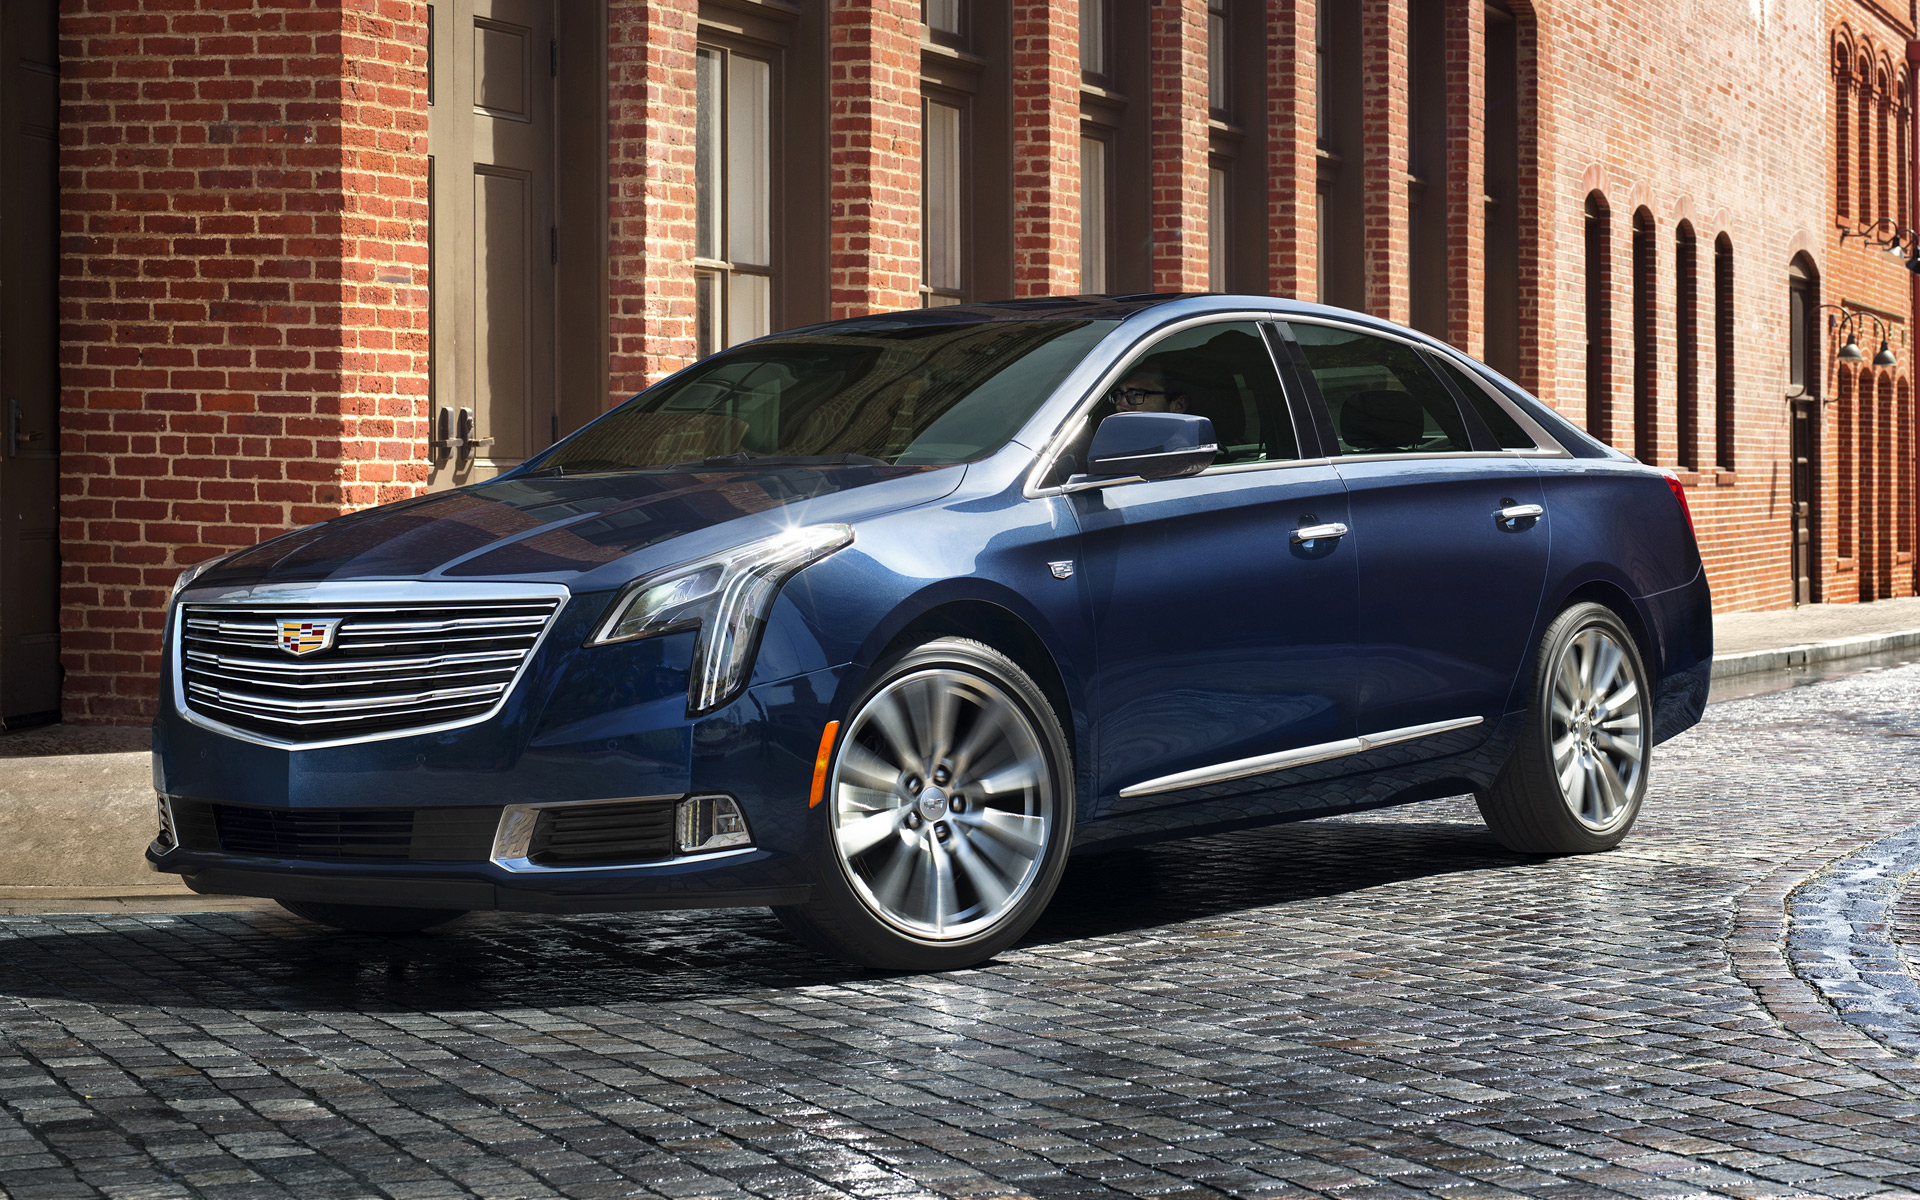 new and used cadillac xts prices photos reviews specs the car connection